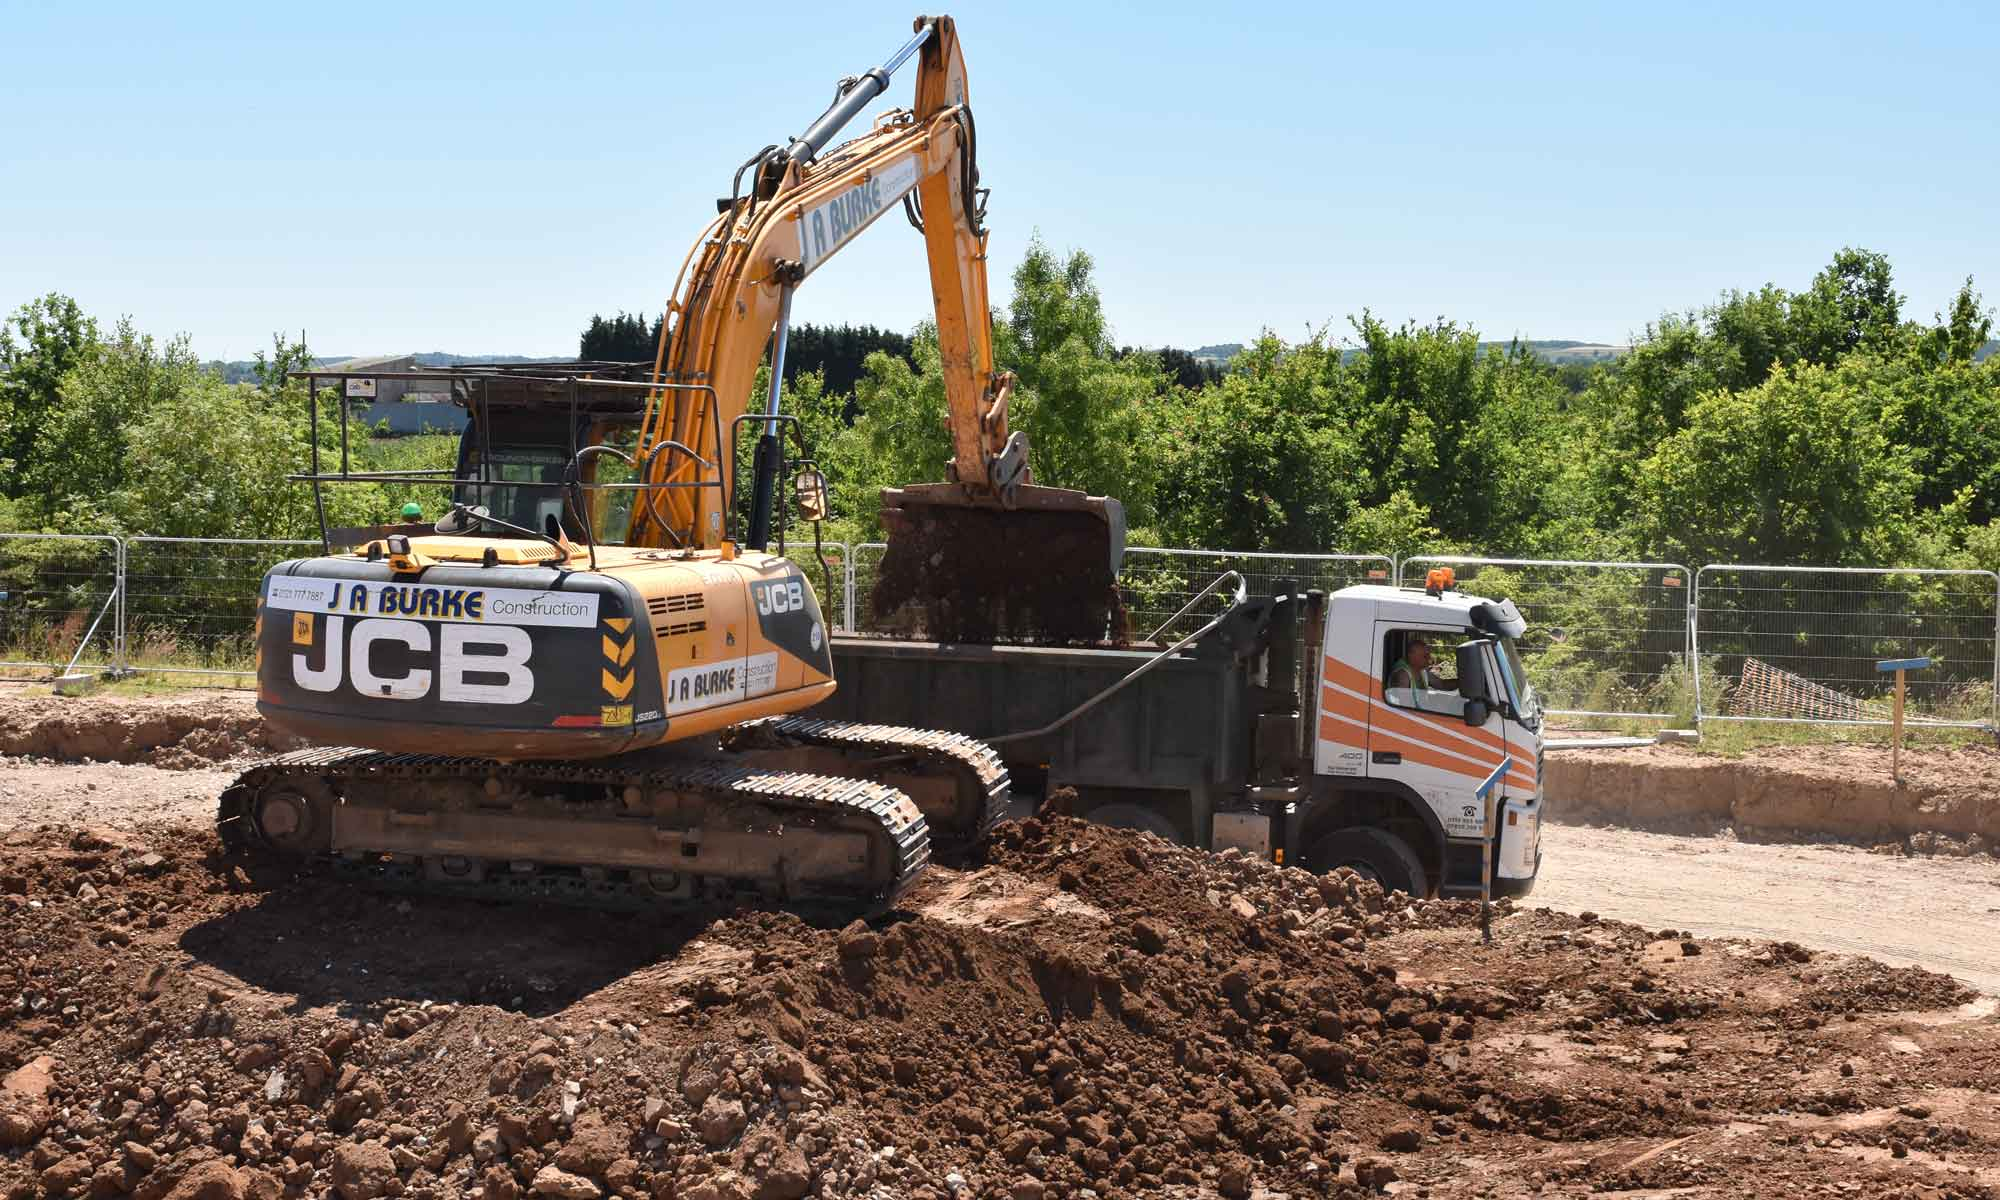 Services - J A Burke Construction Limited - Midlands based ground works, civils and RC frame company.